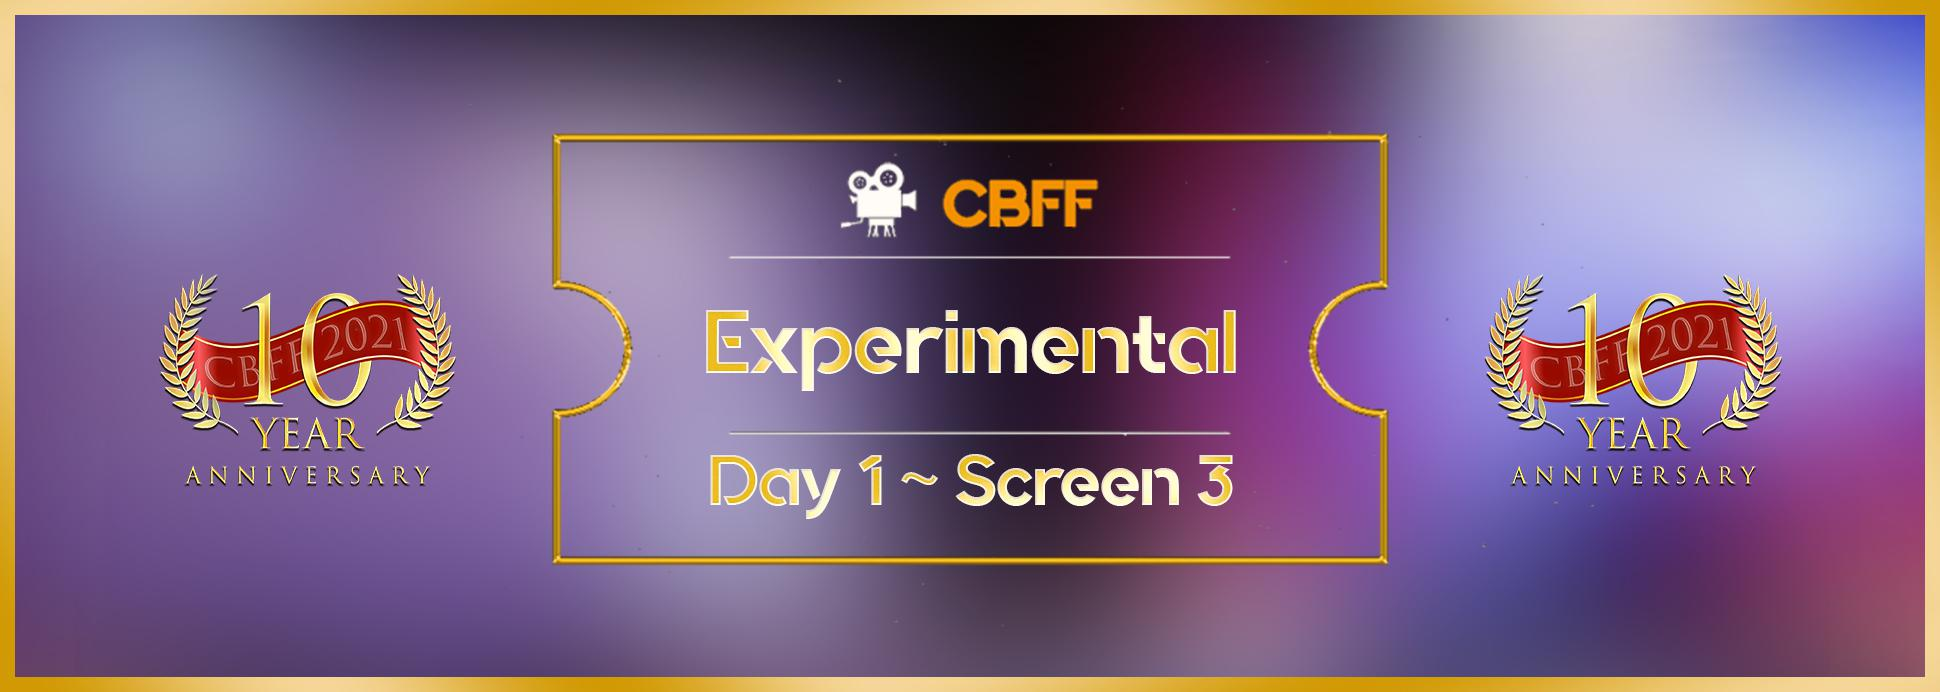 Day 1, Screen 3: Experimental